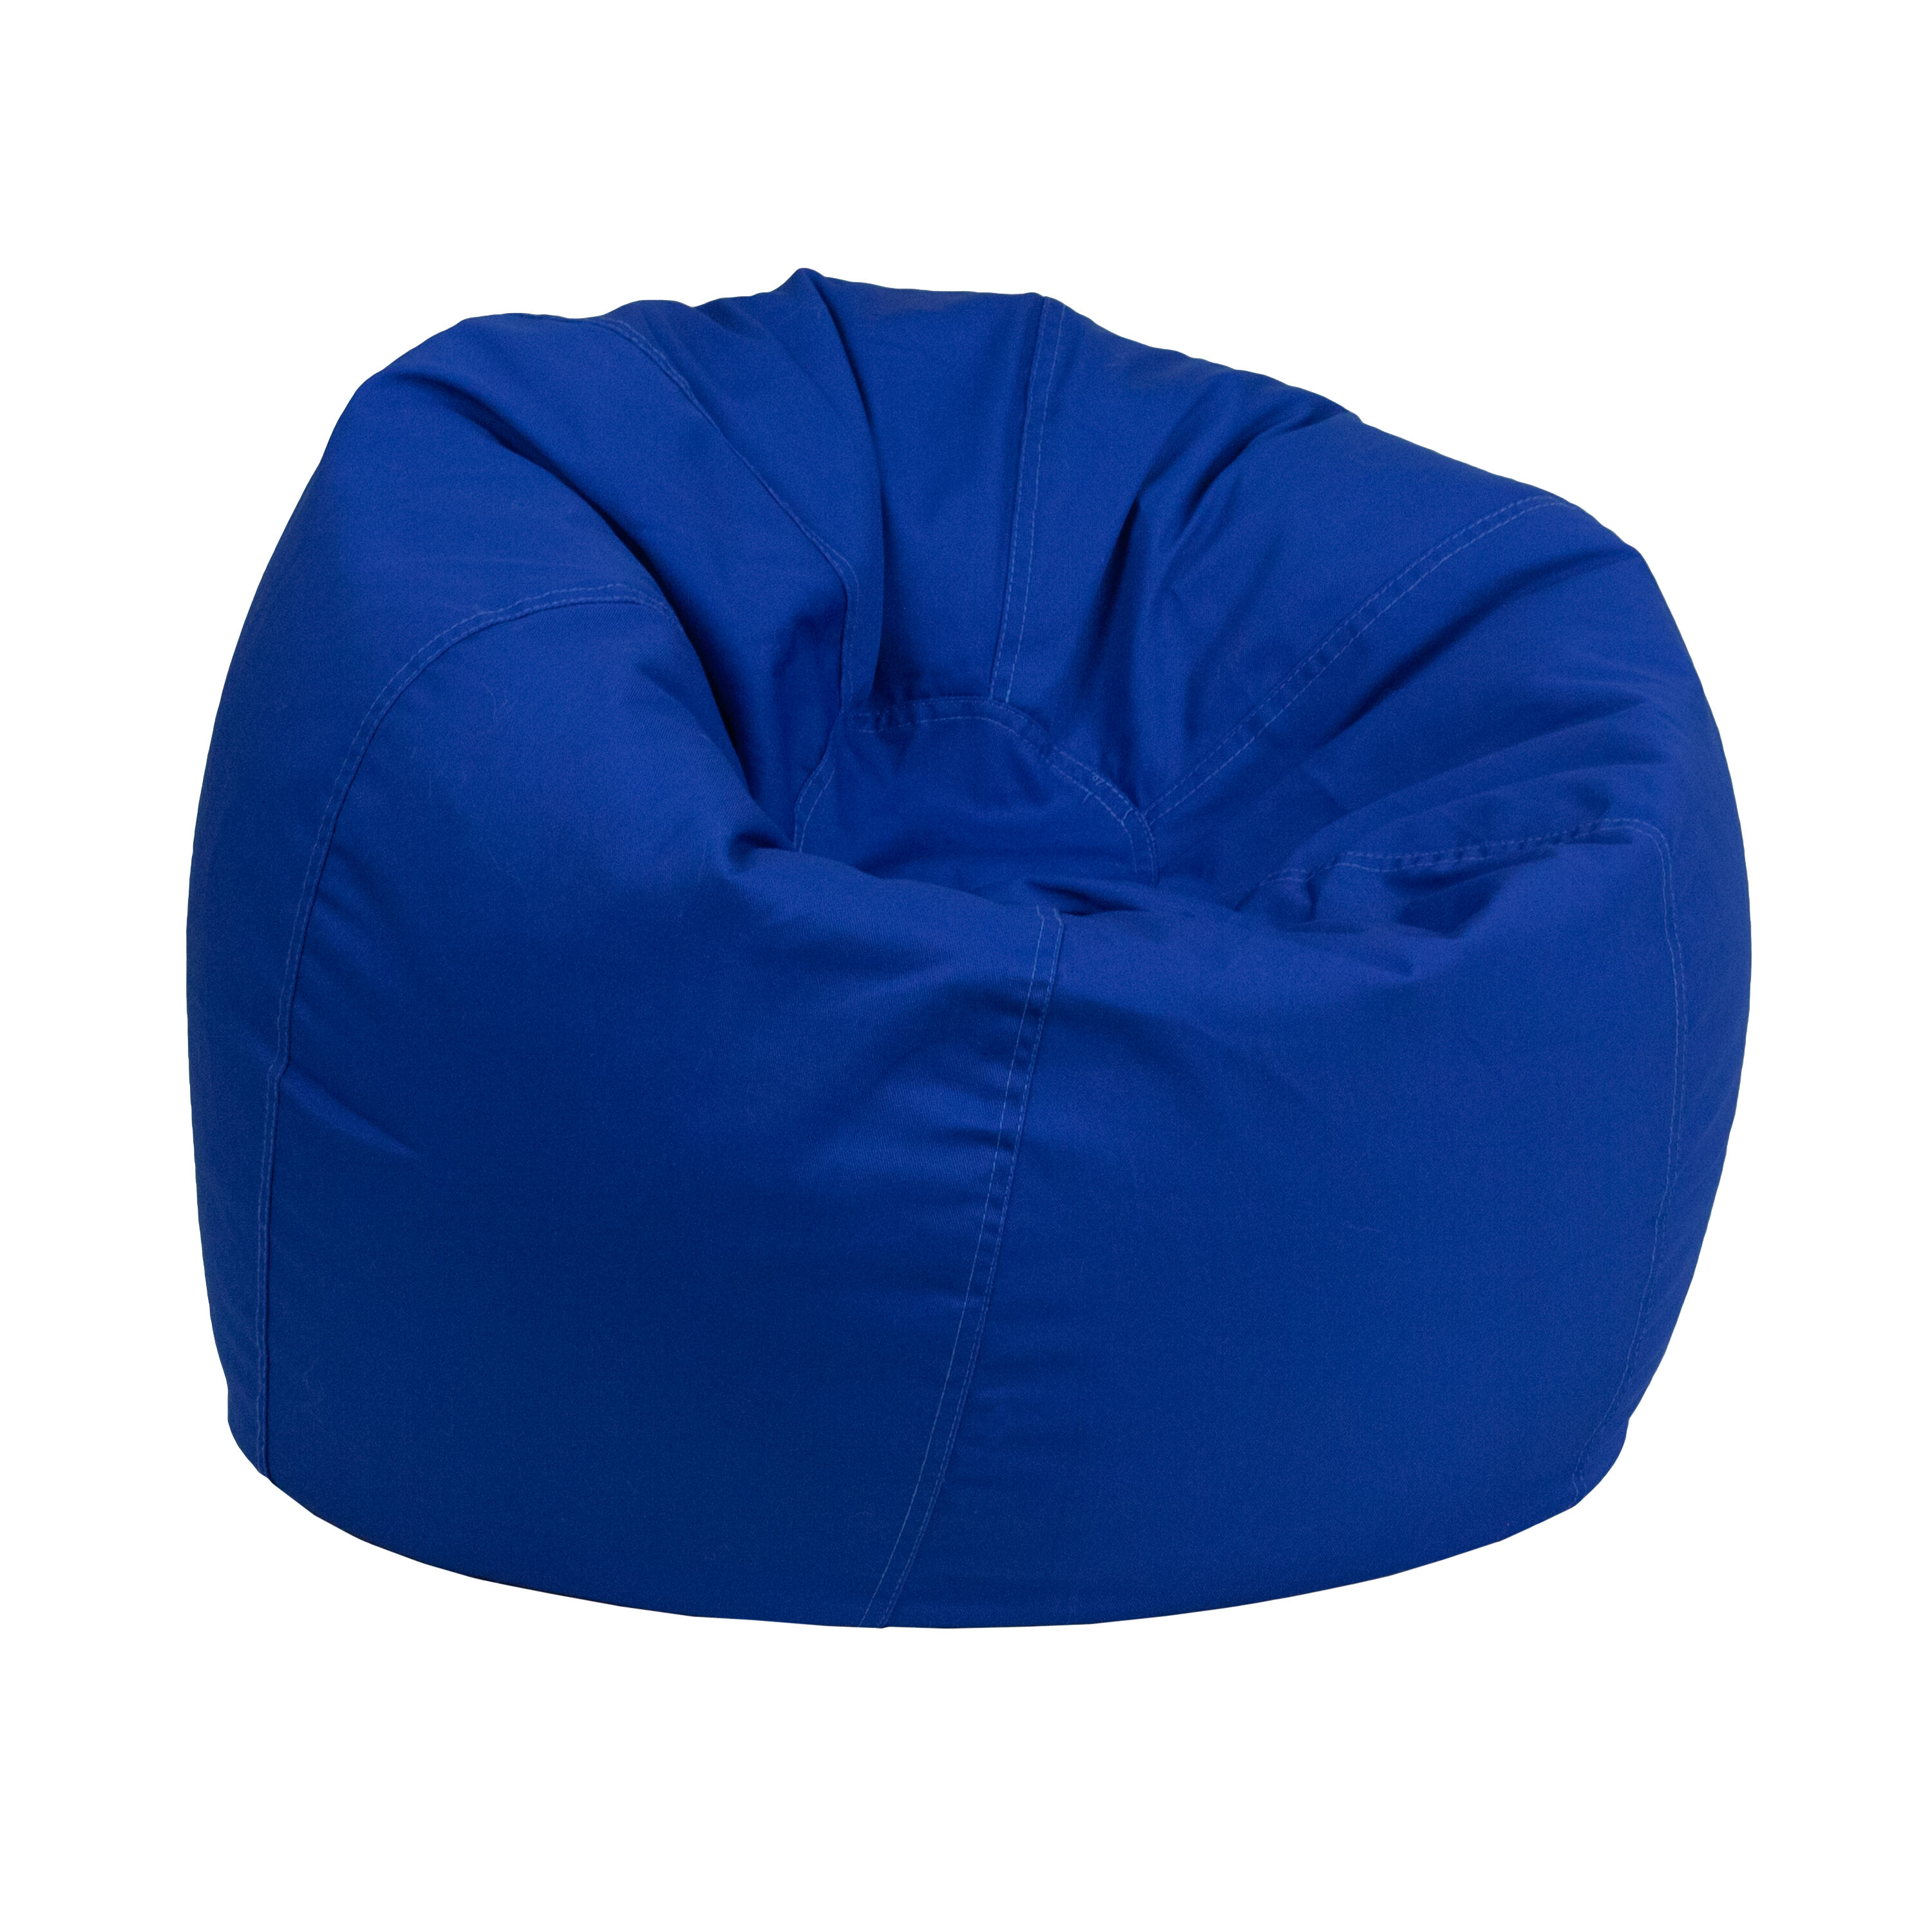 blue bean bag chairs massage chair panasonic royal dg small solid roybl gg images our kids